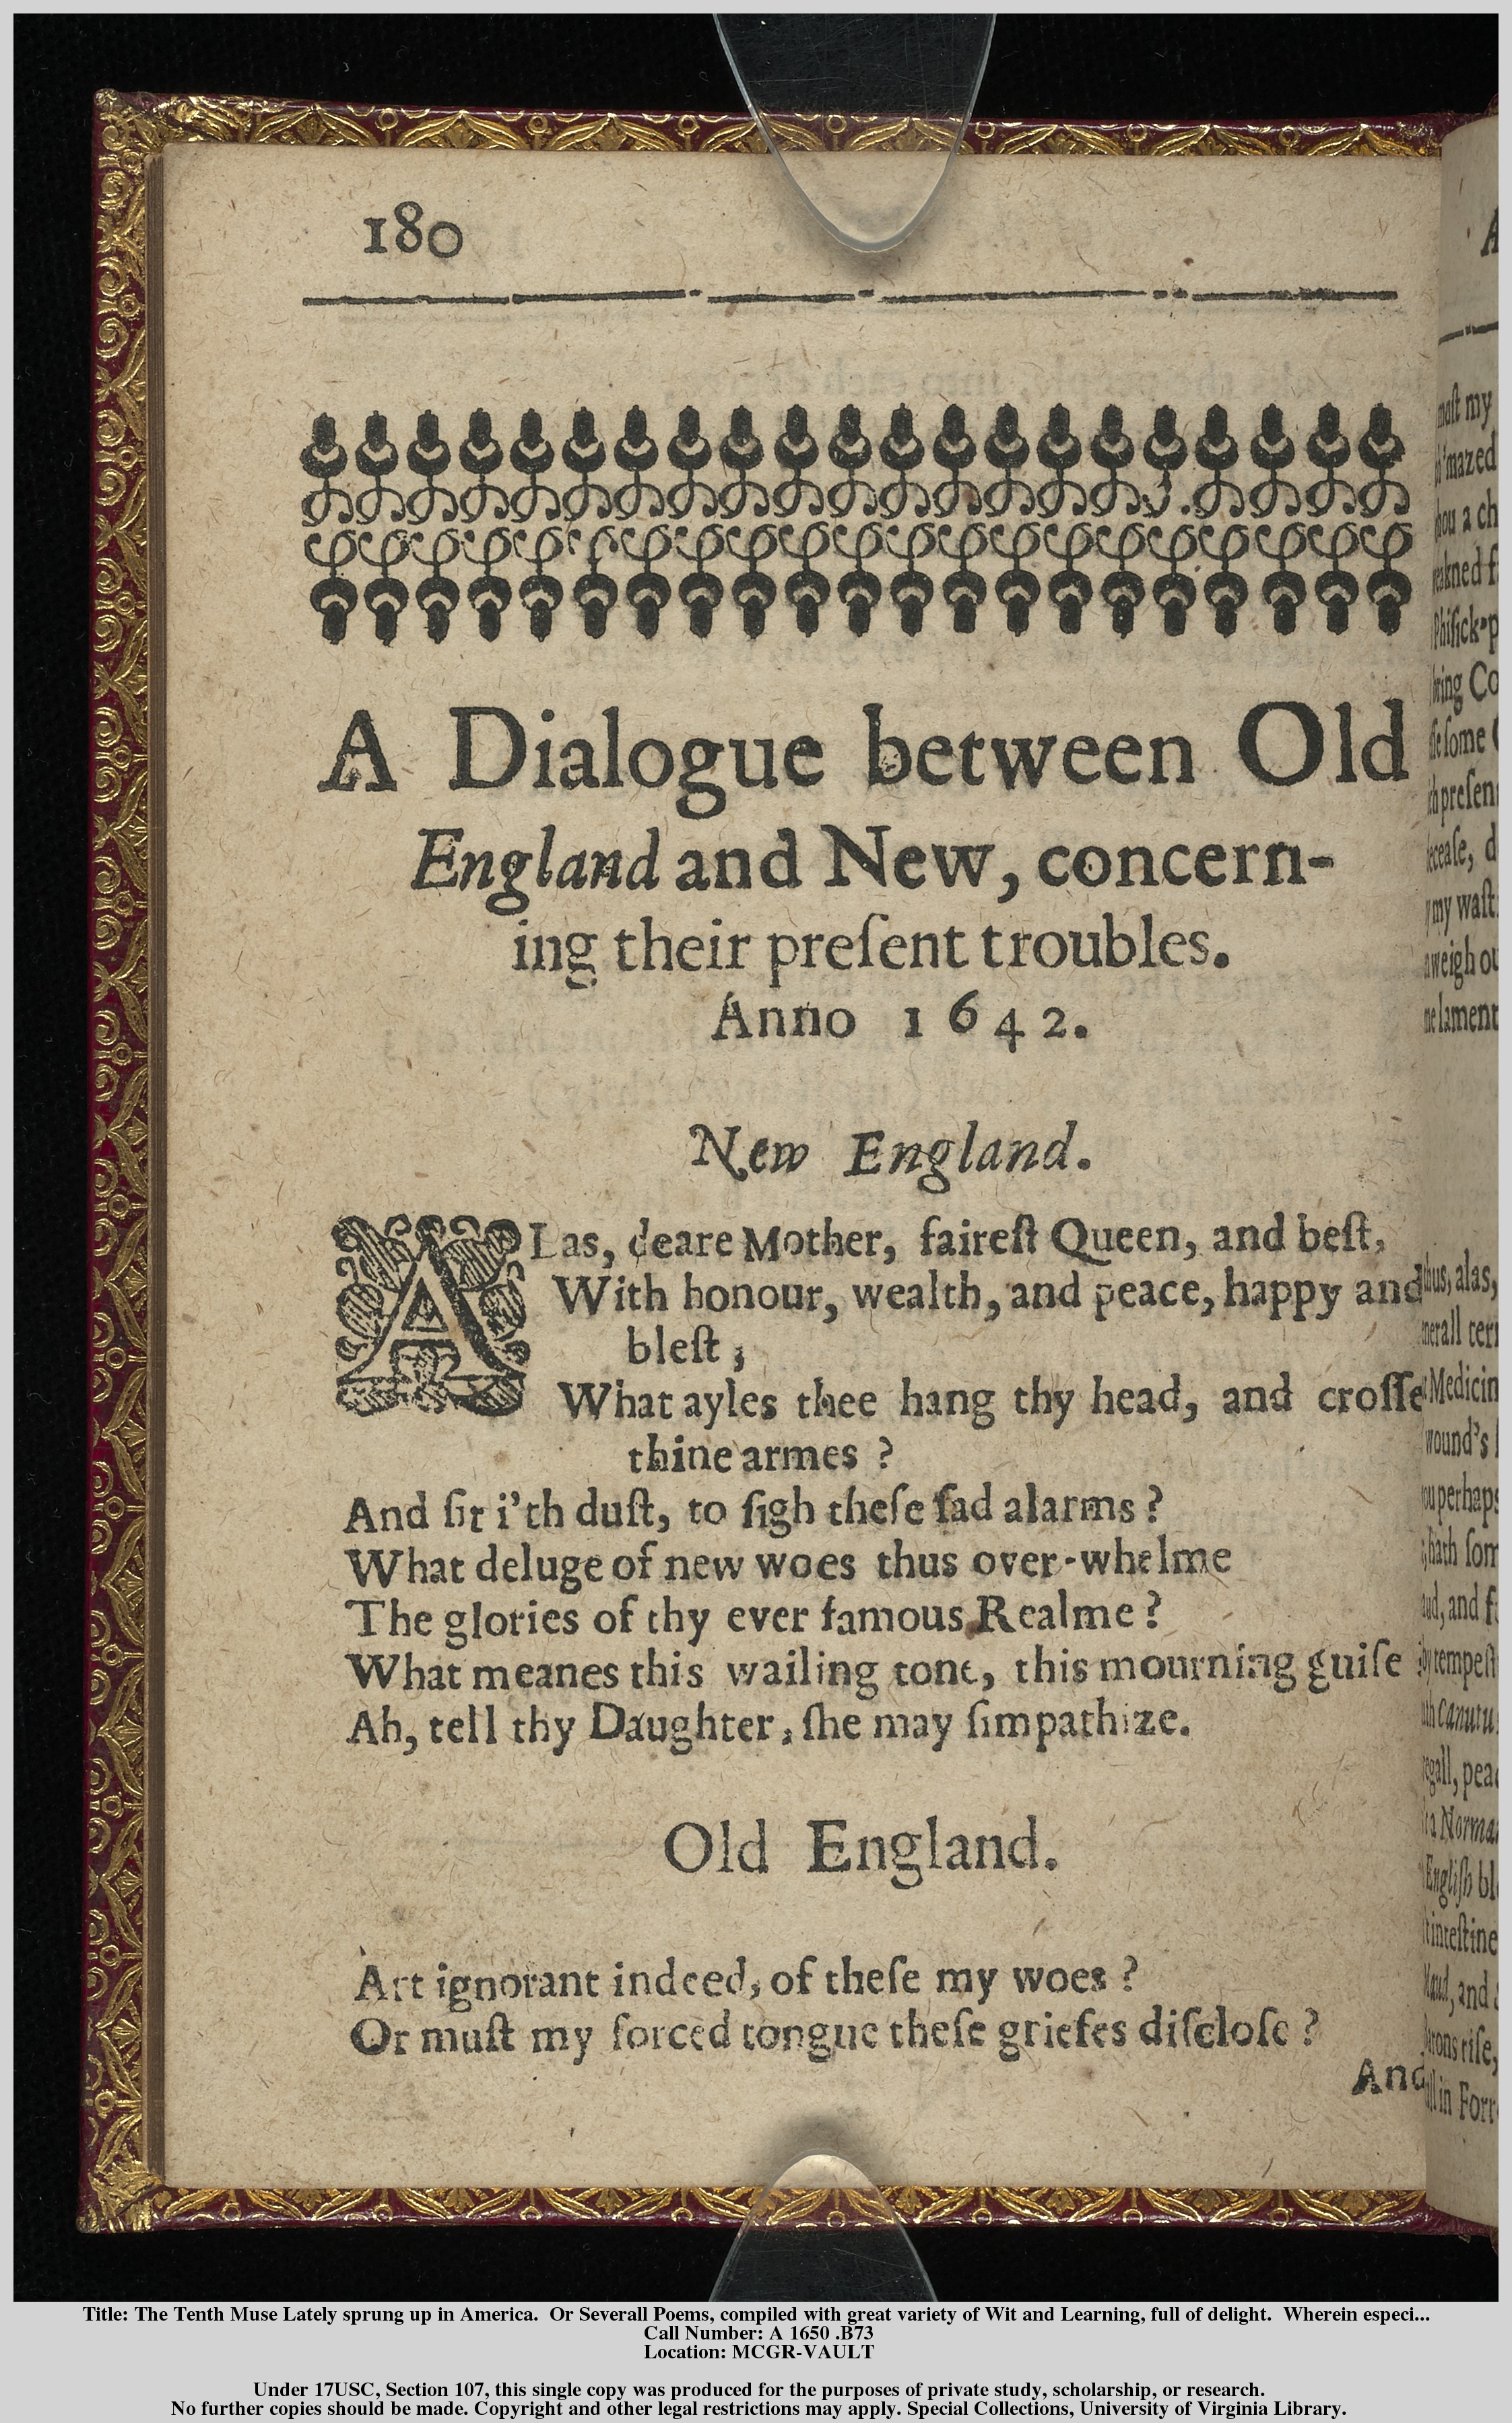 essay on anne bradstreet - anne bradstreet anne bradstreet was america's first noteworthy poet in spite of the fact that she was a woman both the daughter and wife of massachusetts governors, bradstreet suffered all of the hardships of colonial life, was a mother, and still found time to write.